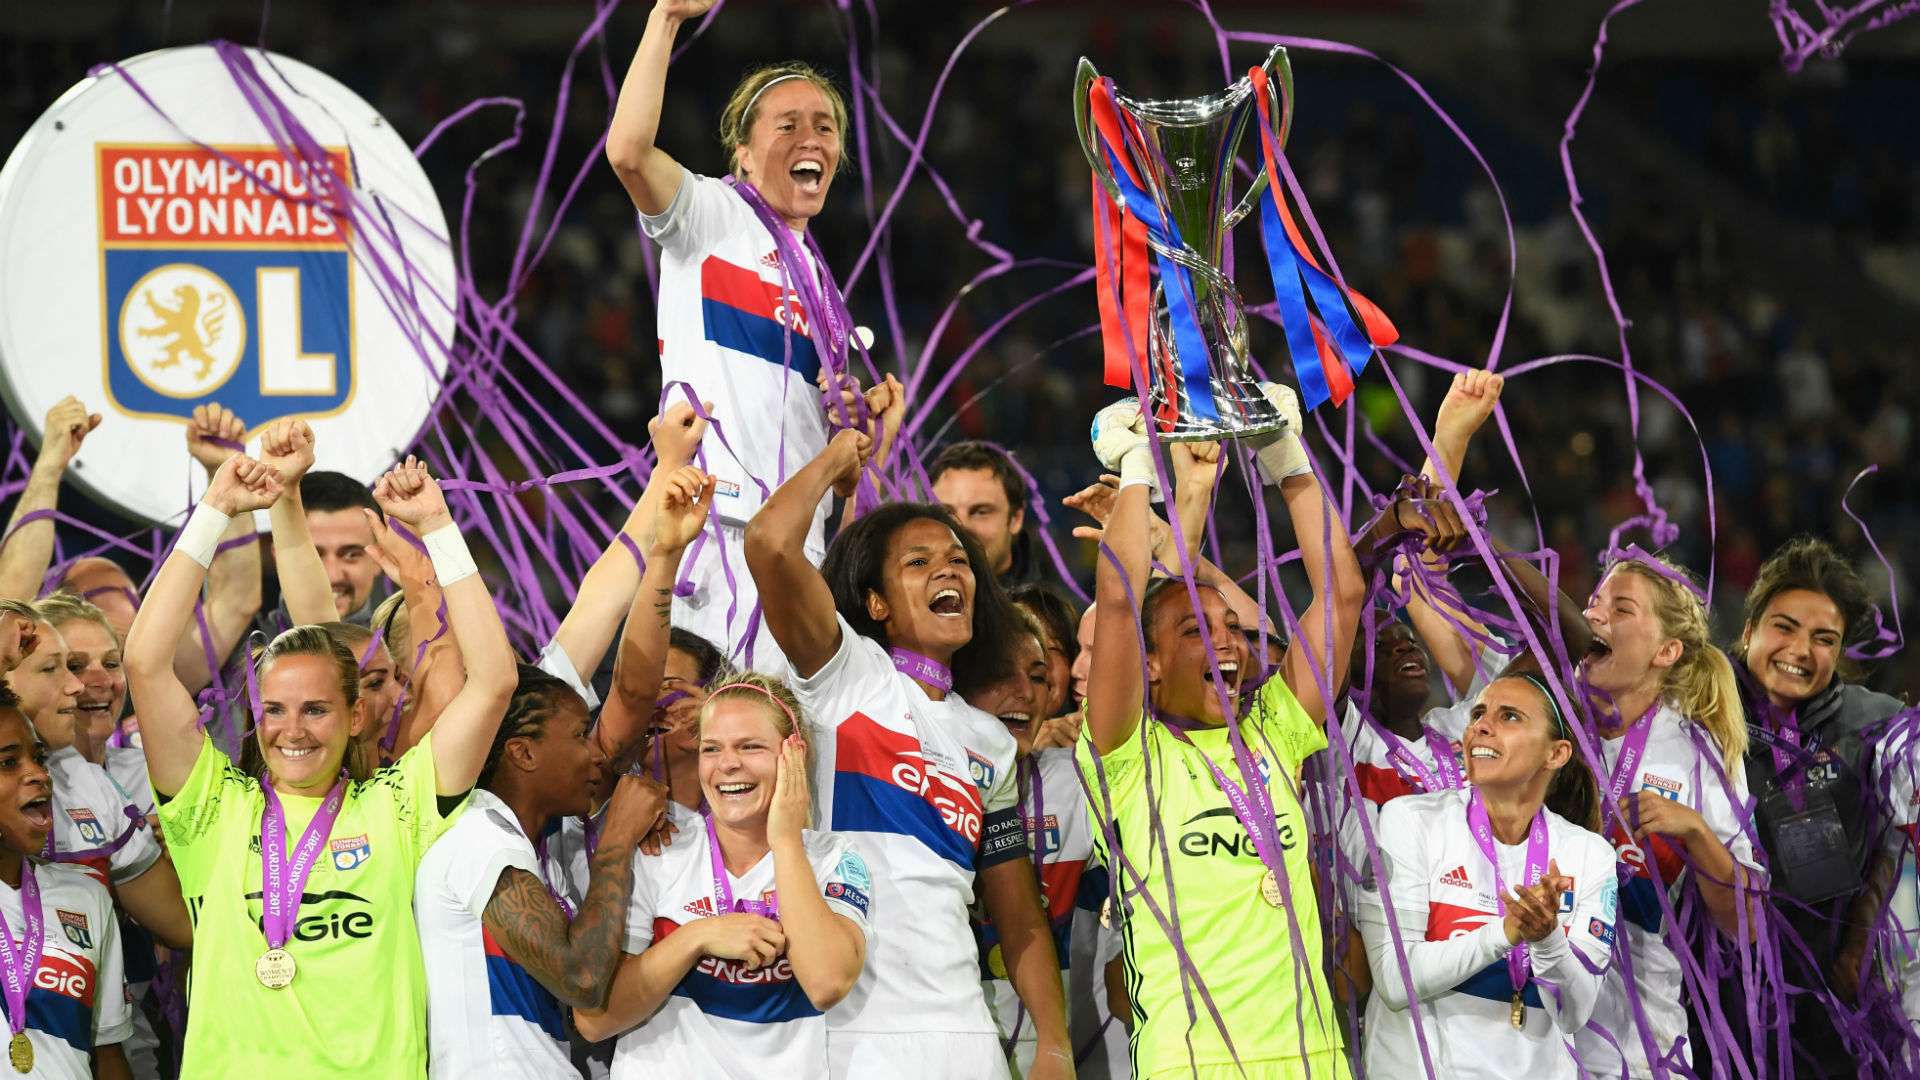 Lyon keeper nets shootout winner to secure women's Champions League trophy